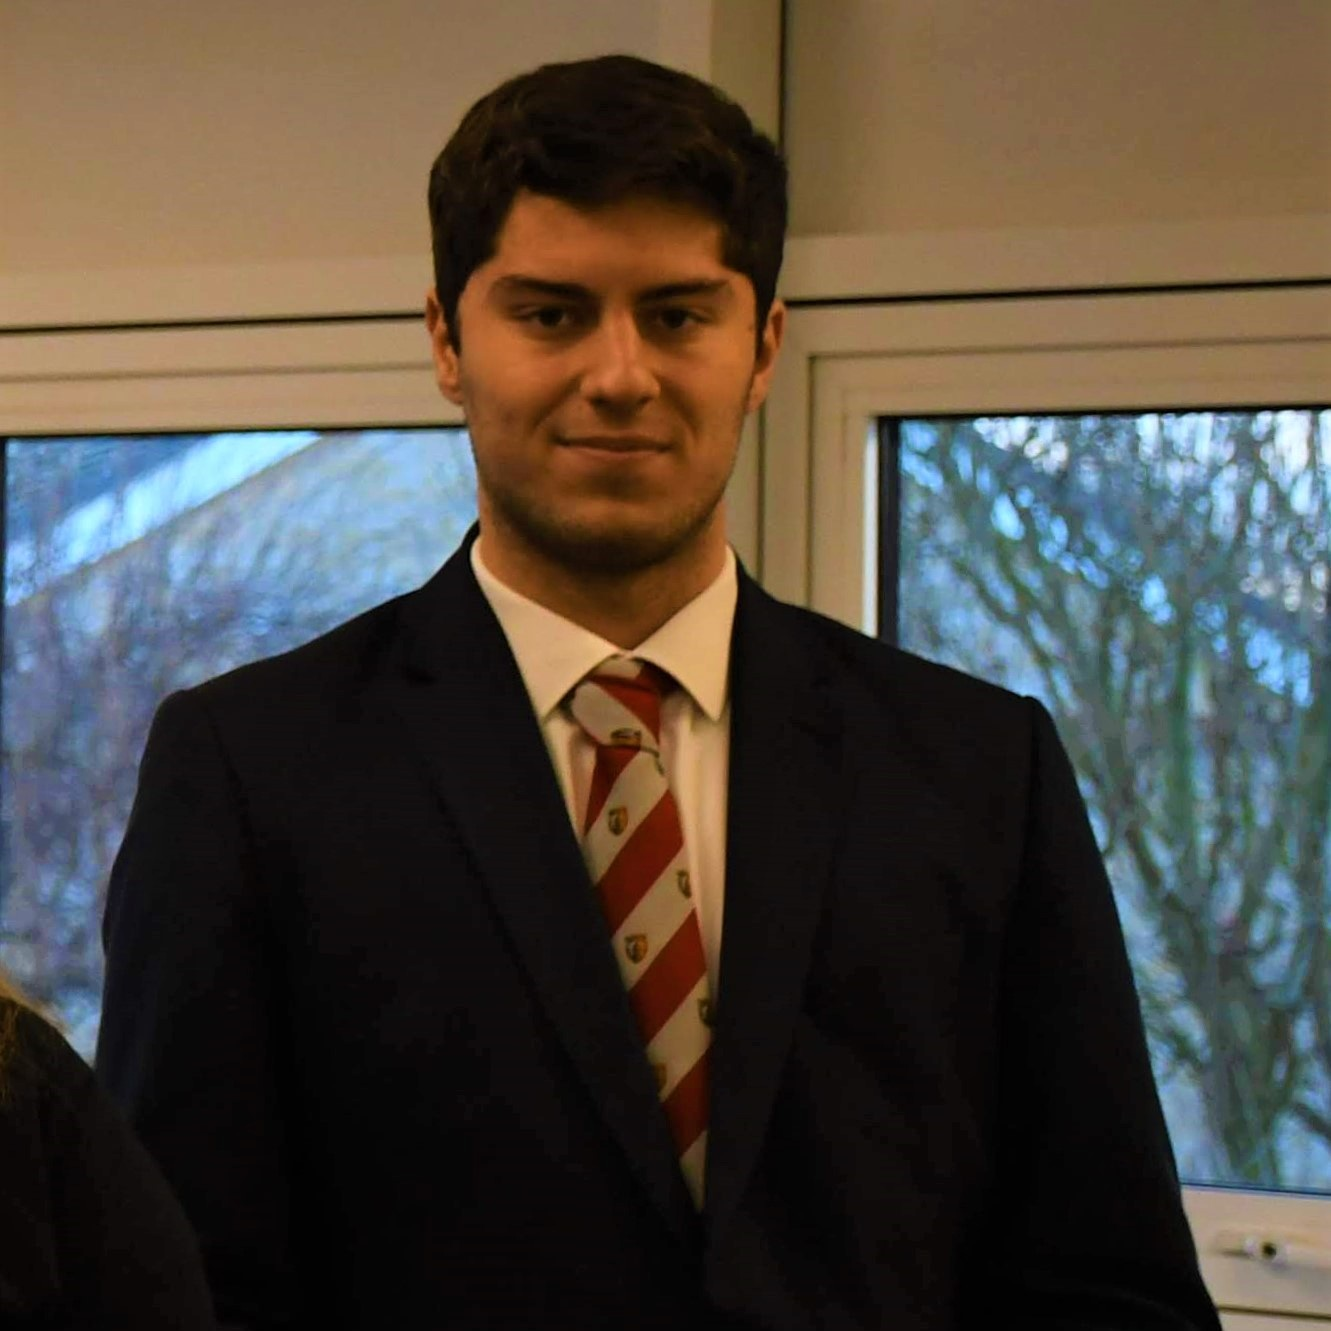 Darvy from Gunnersbury Sixth Form - Clifford Chance's Future Lawyer of the Year, 2019